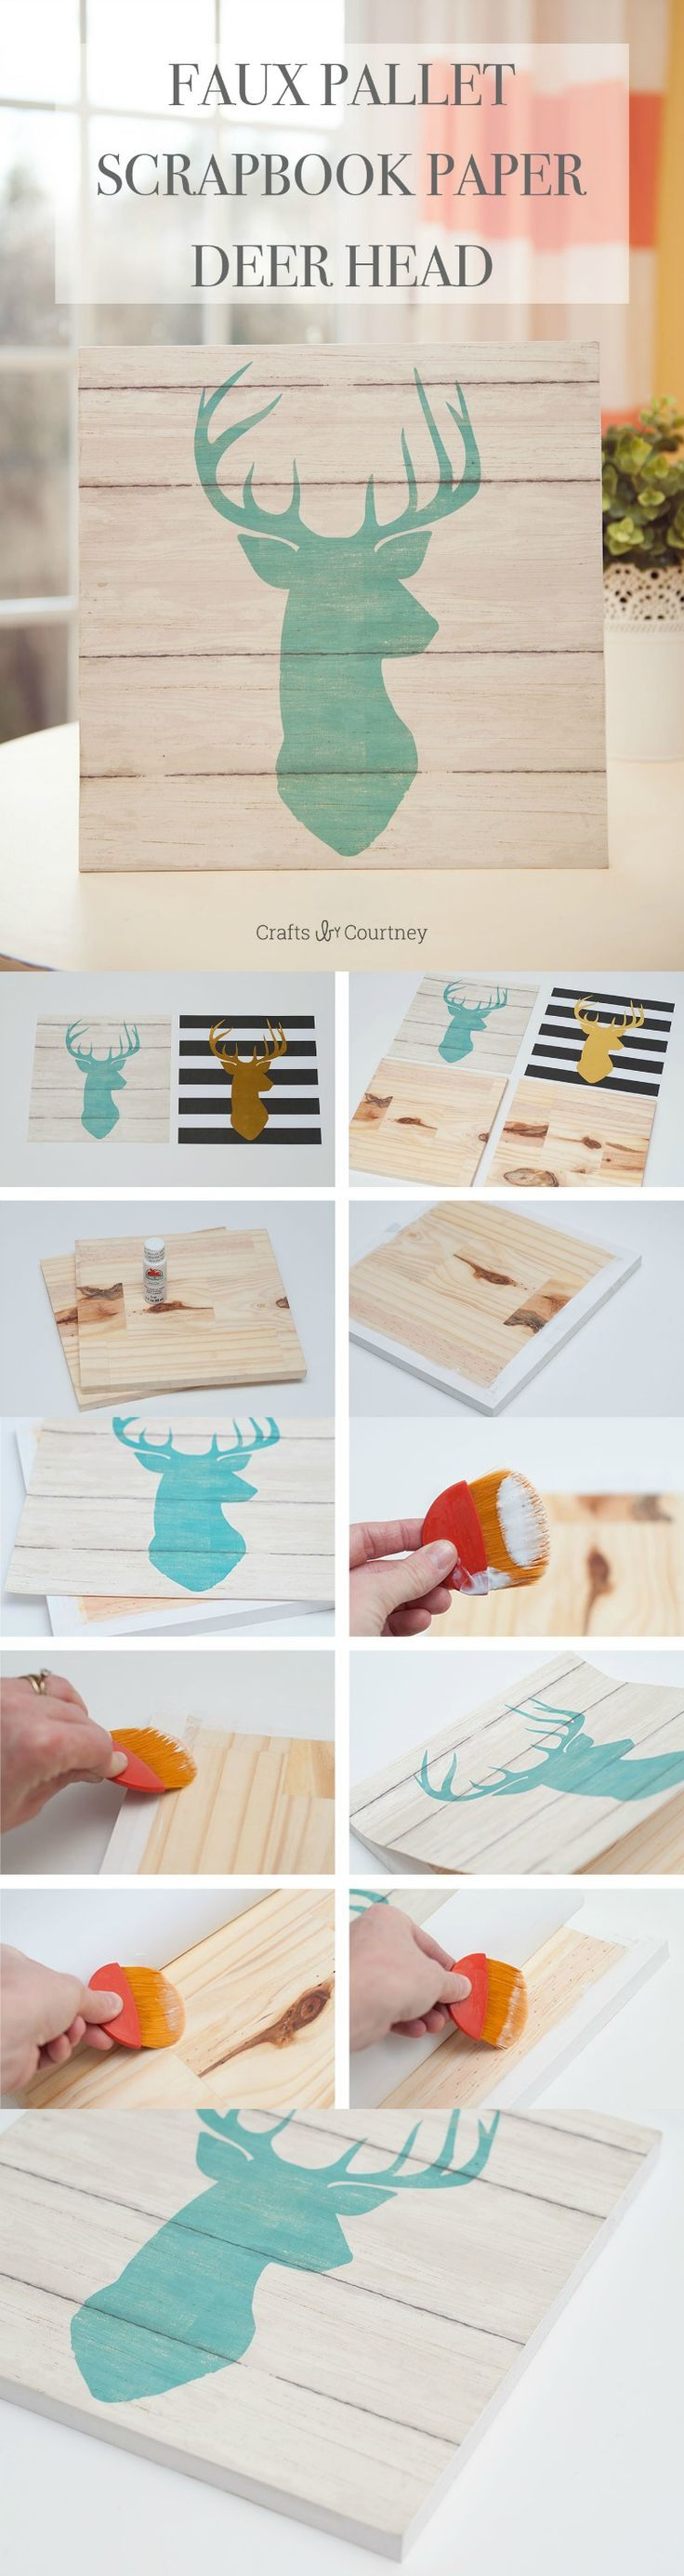 How to put scrapbook paper on wood - Use Cool Scrapbook Paper And Cut Pieces Of Wood To Make Fabulous Diy Wall Art In